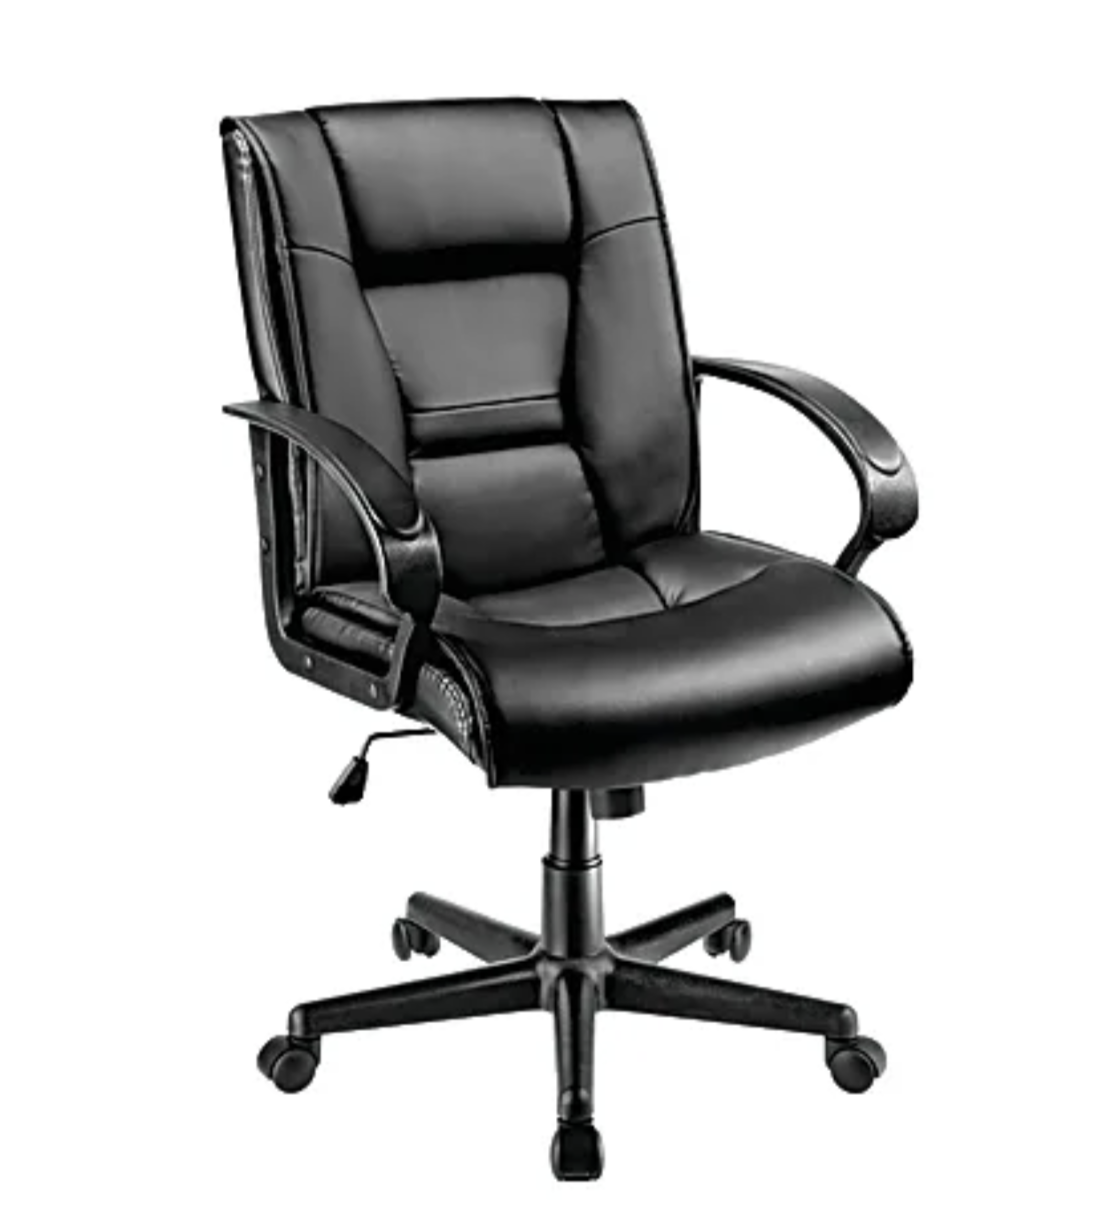 A black swivel leather chair with arm rests and height adjustment